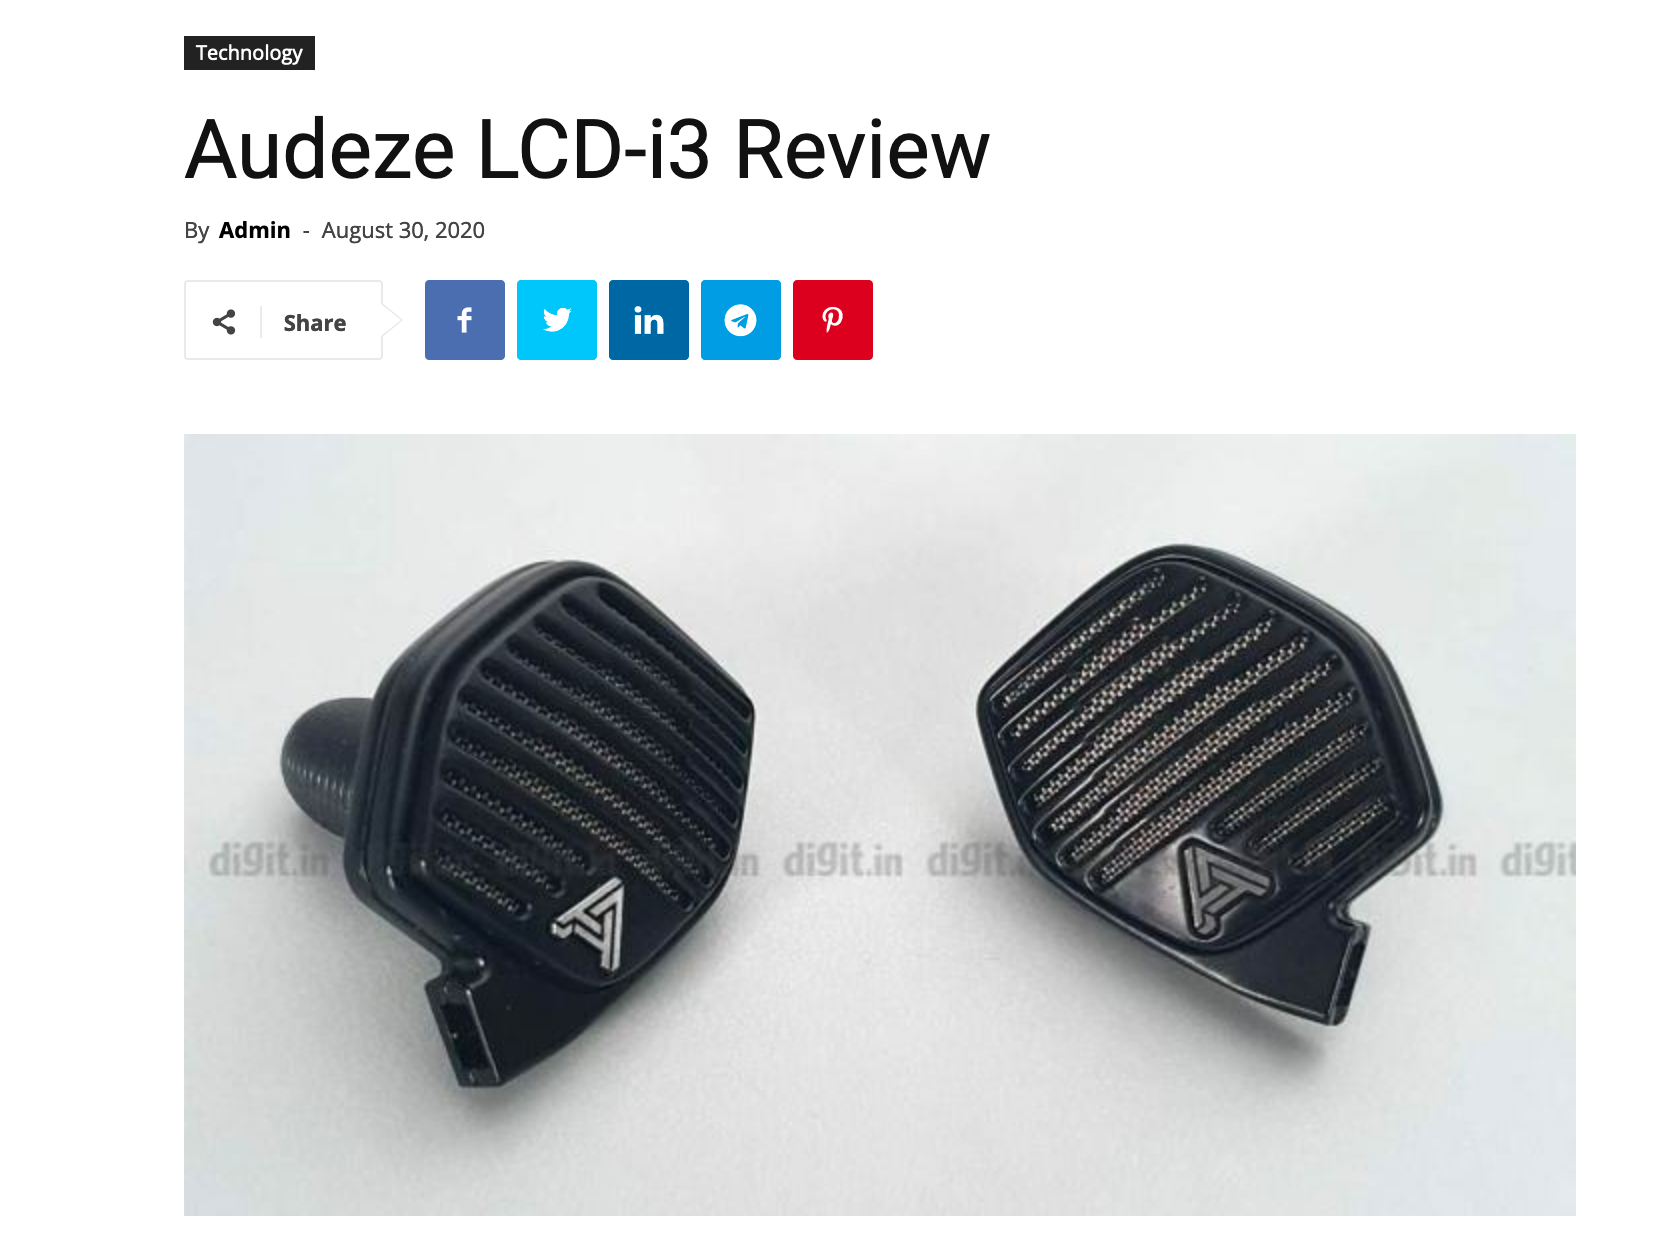 New World J Reviews the Audeze LCDi3